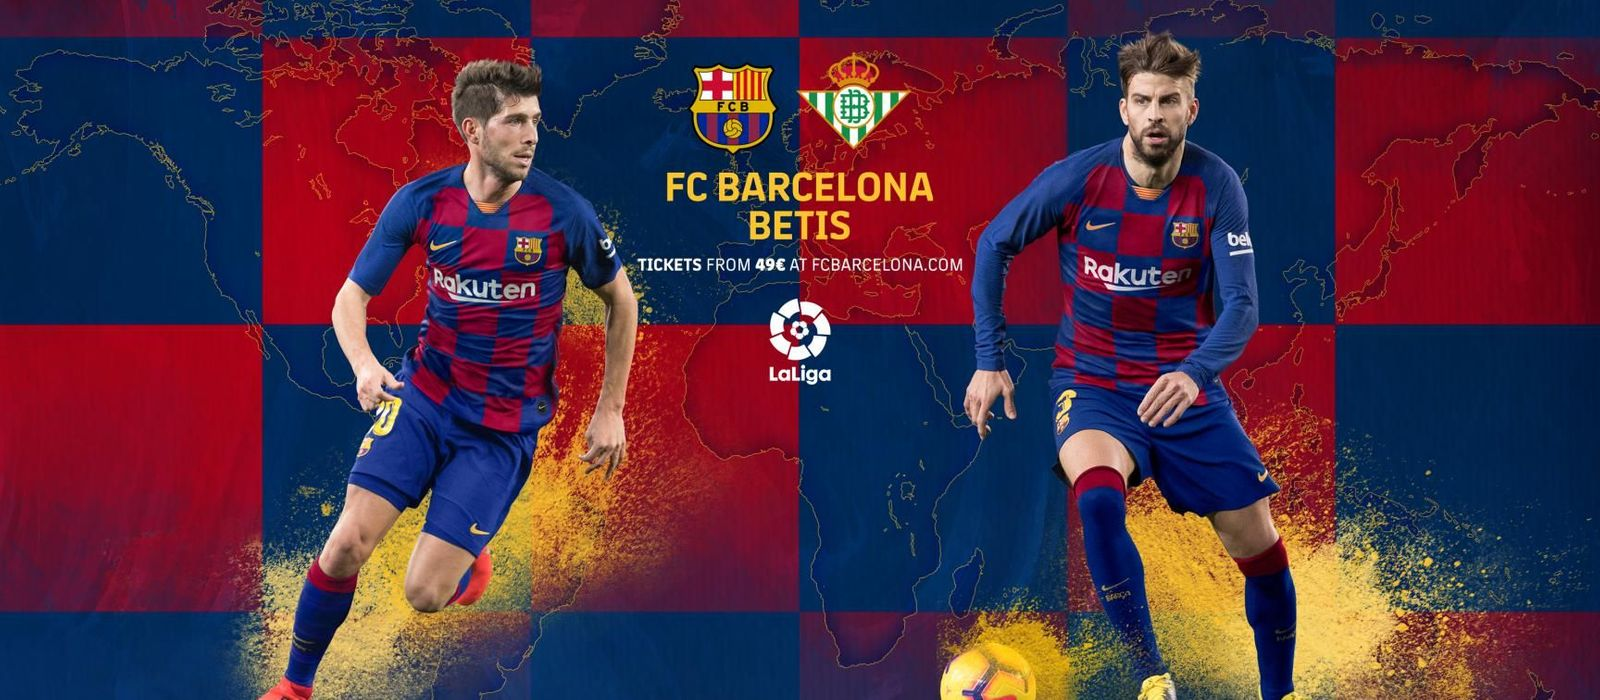 When and where to watch Barça v Betis